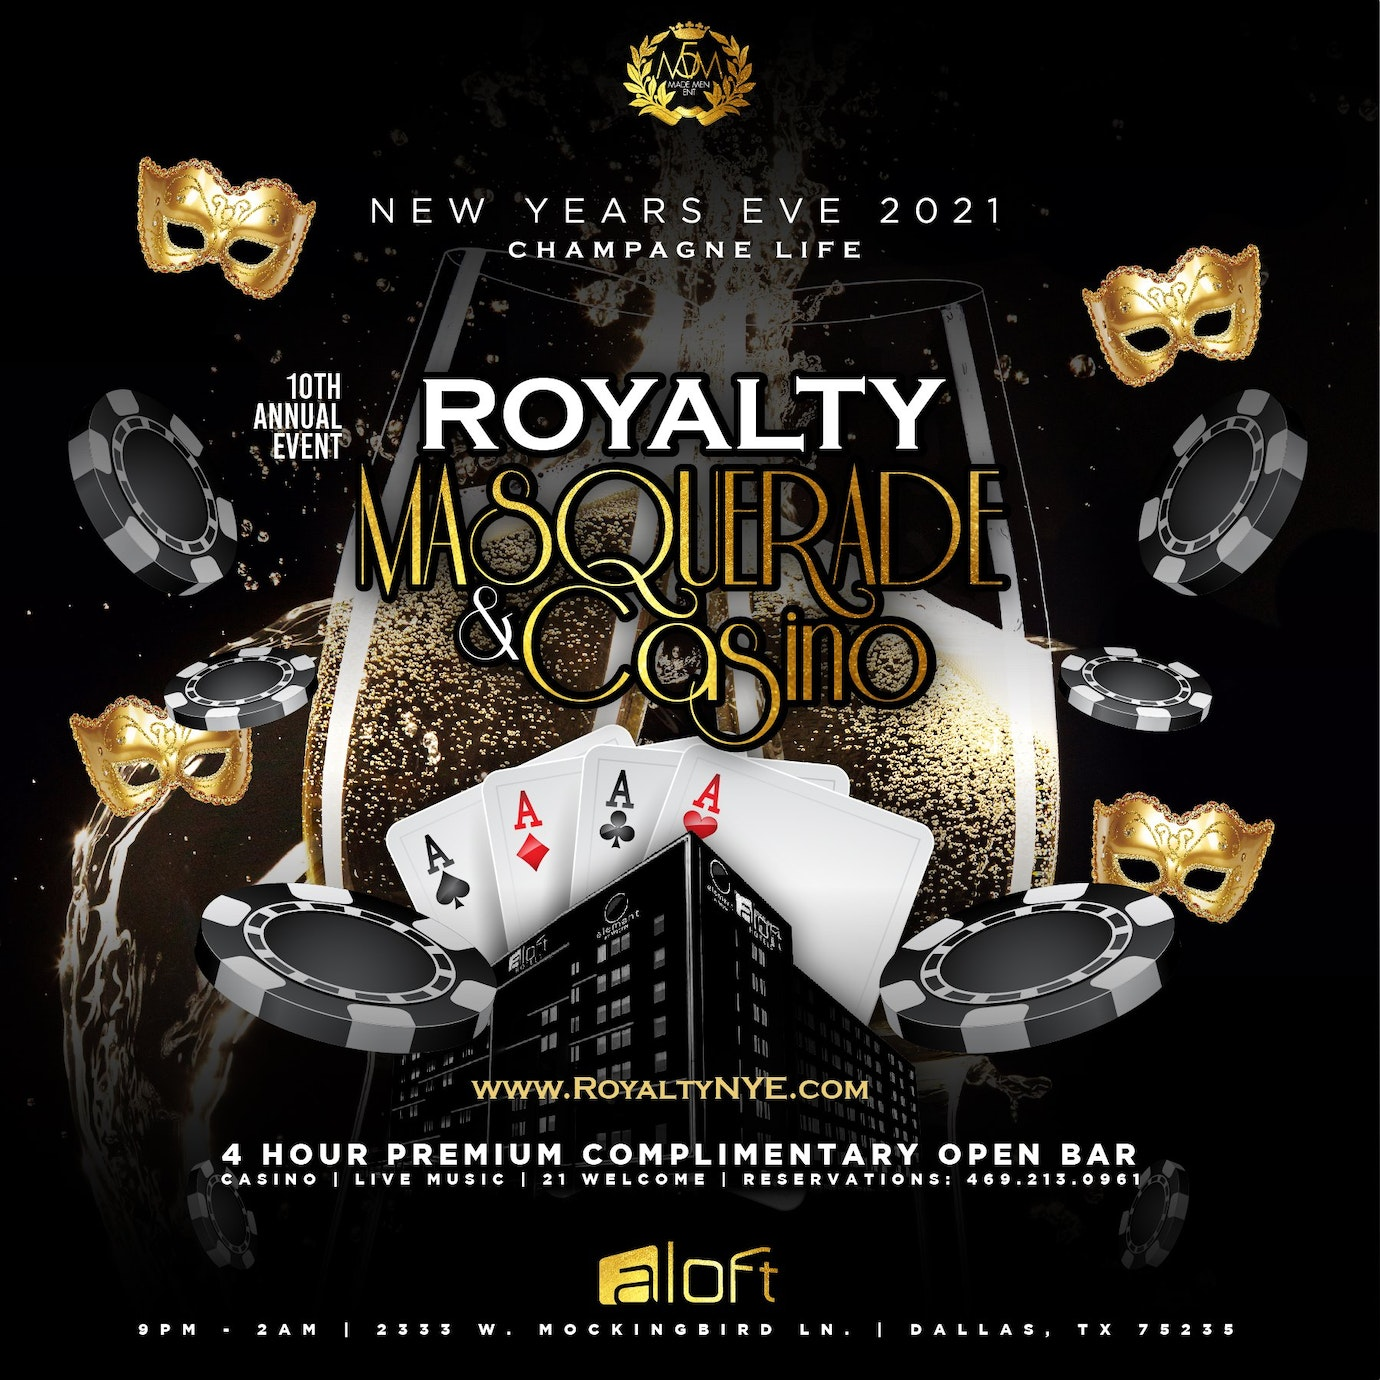 10th Annual New Years Eve 2021 Champagne Life: ROYALTY MASQUERADE & CASINO